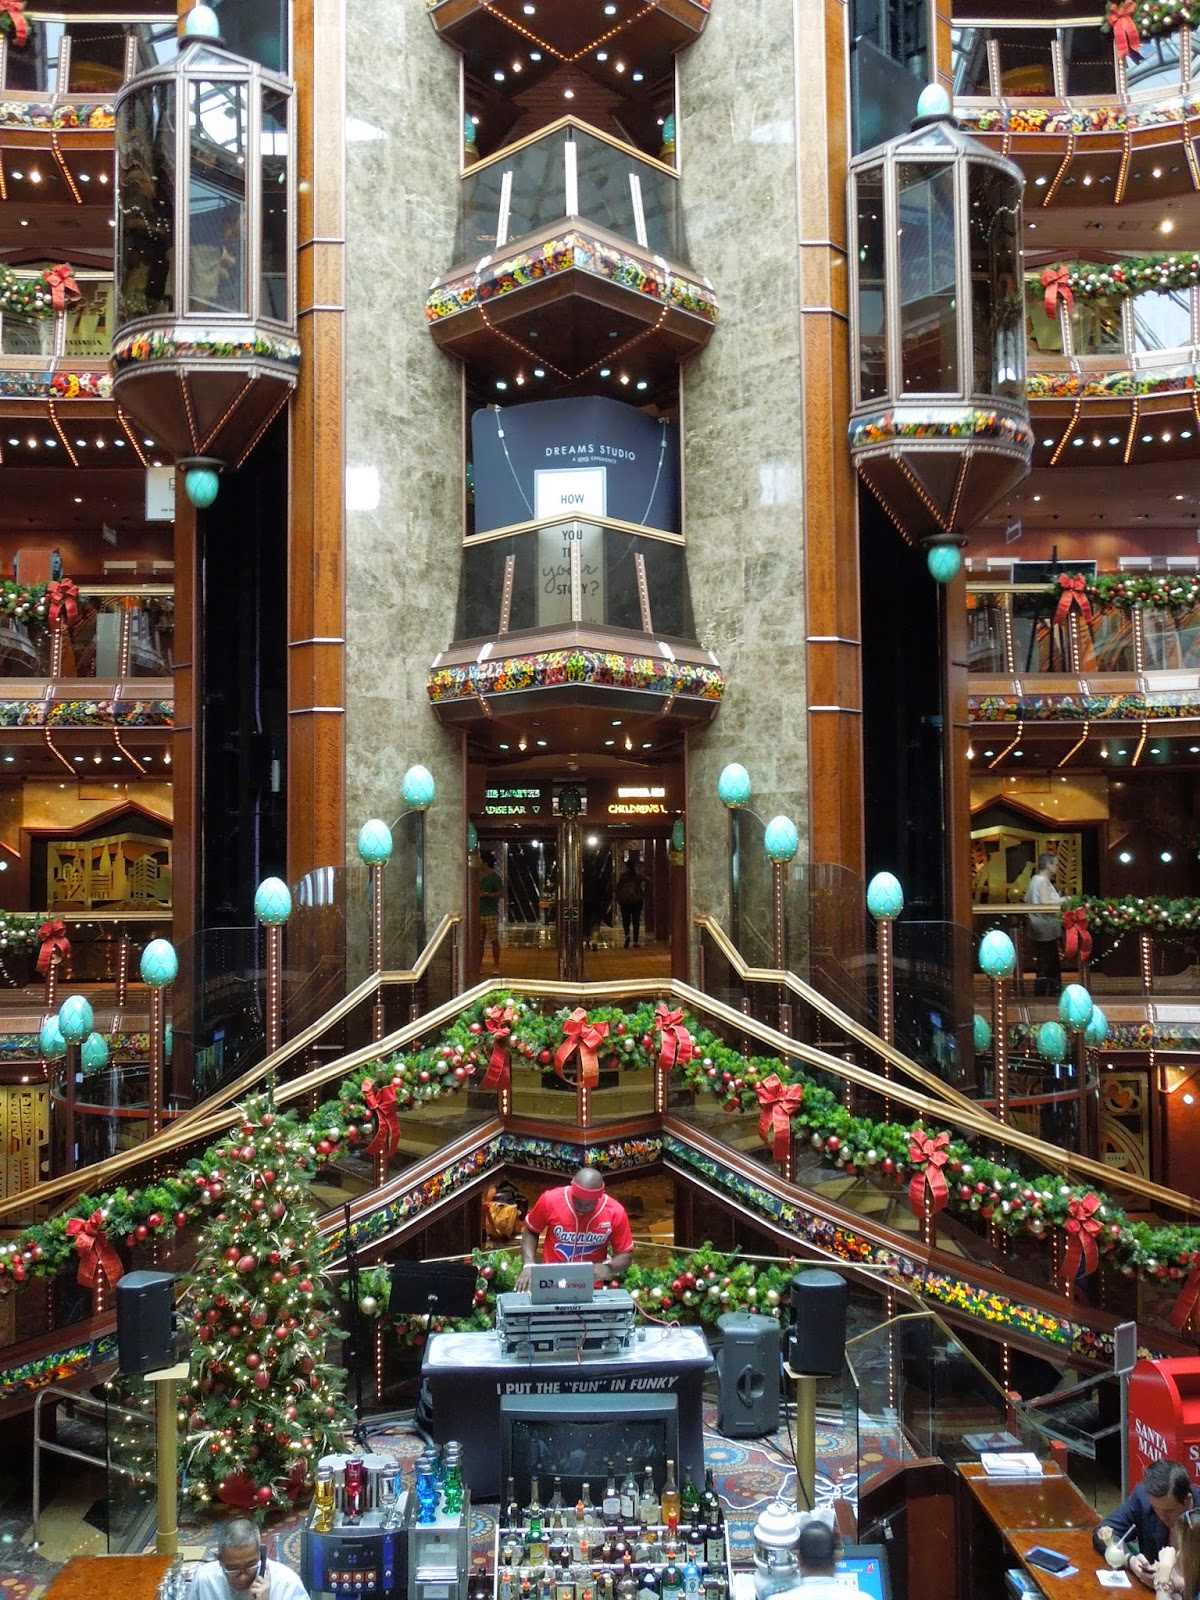 Paradise atrium Christmas decorations